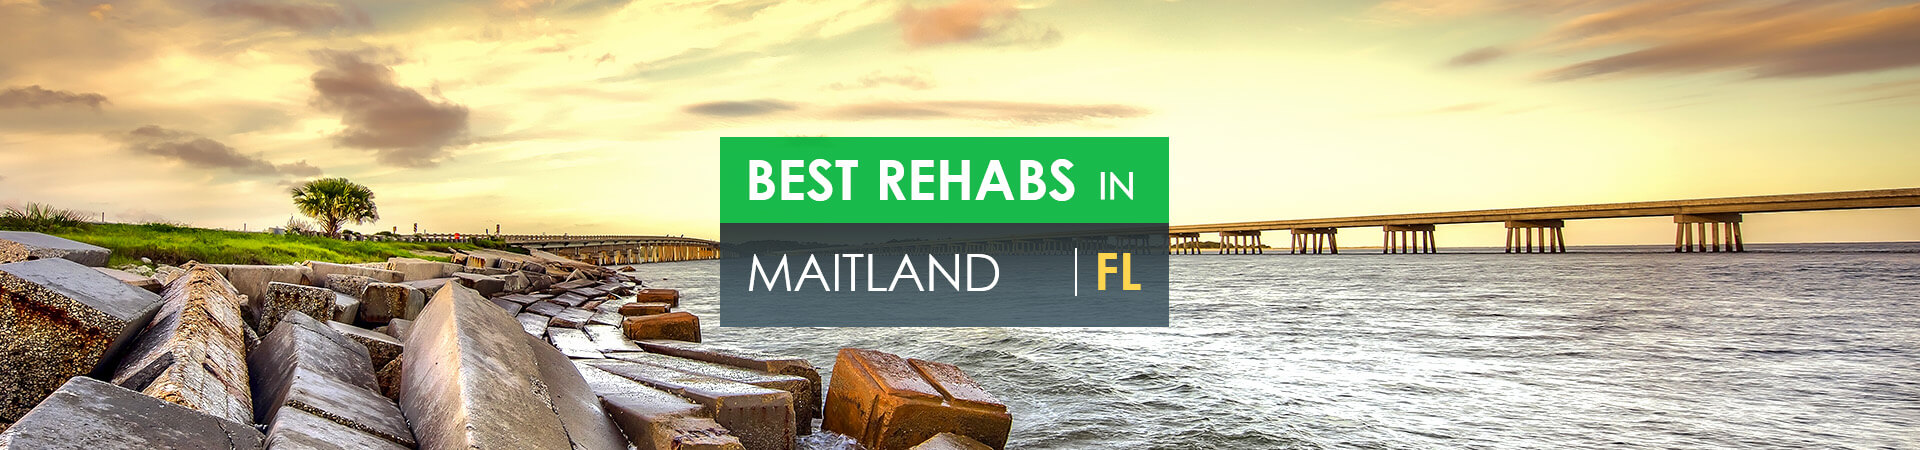 Best rehabs in Maitland, FL